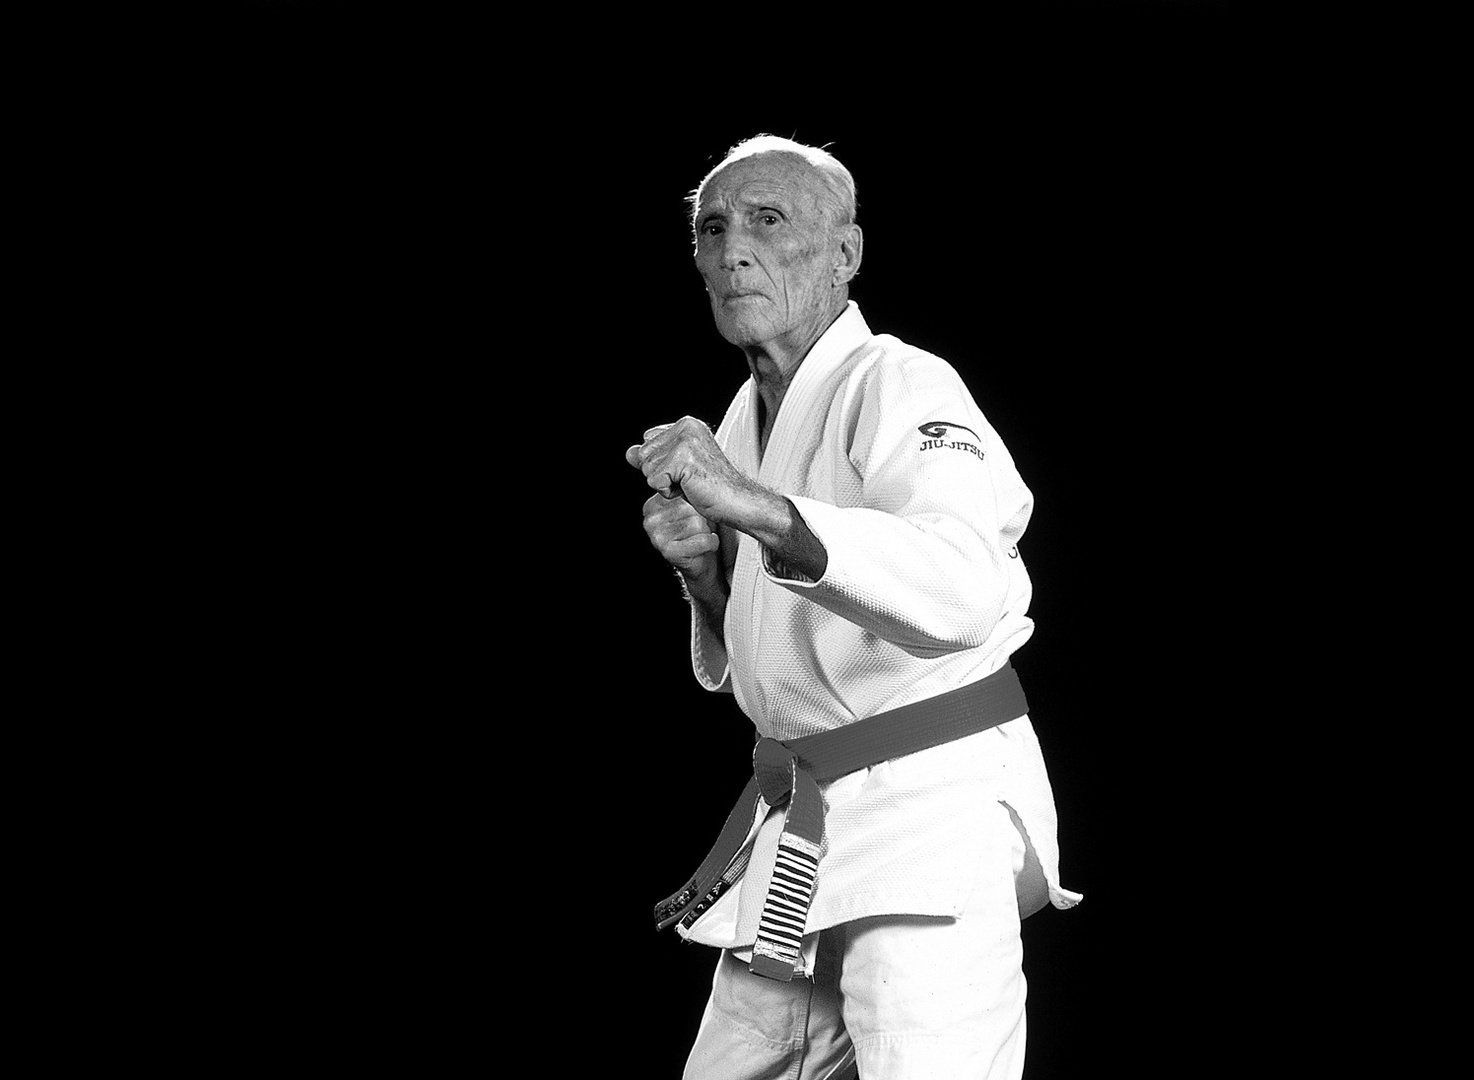 BJJ Legend Helio Gracie And His Brother Carlos Founded The Martial Art Of Jiu